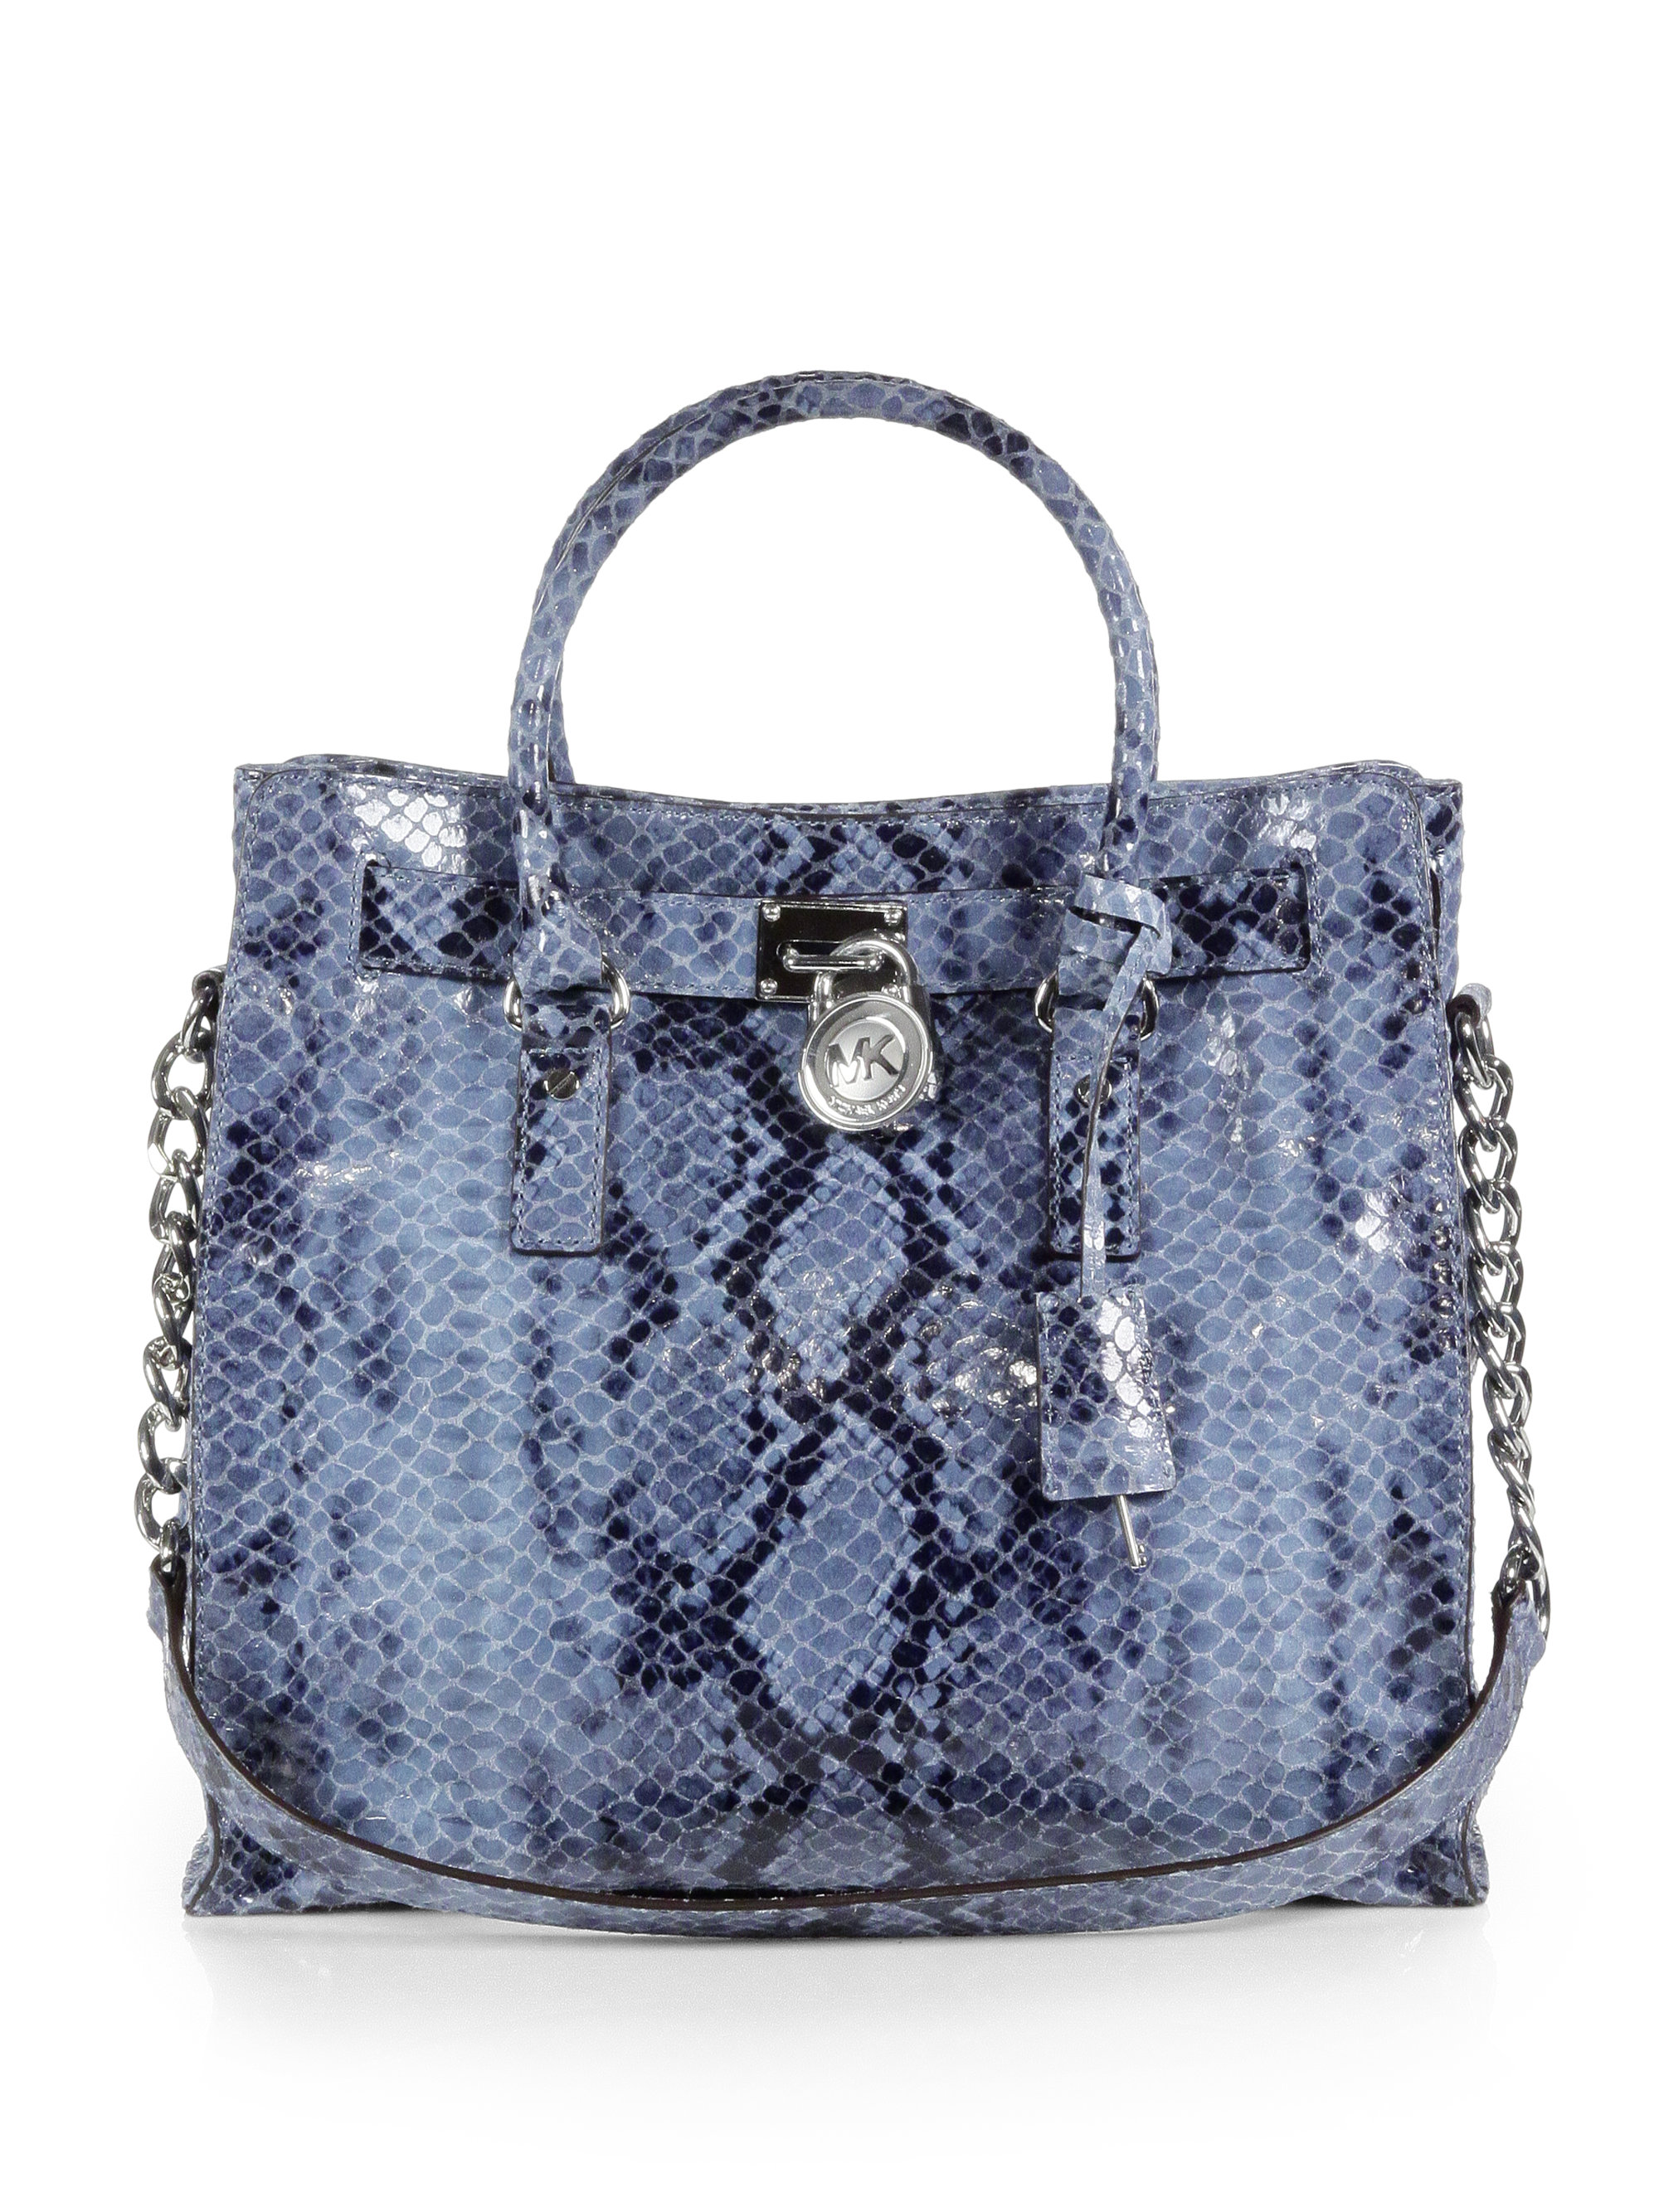 Lyst - MICHAEL Michael Kors Hamilton Snakeembossed Leather Large ... 0ff79a098181b